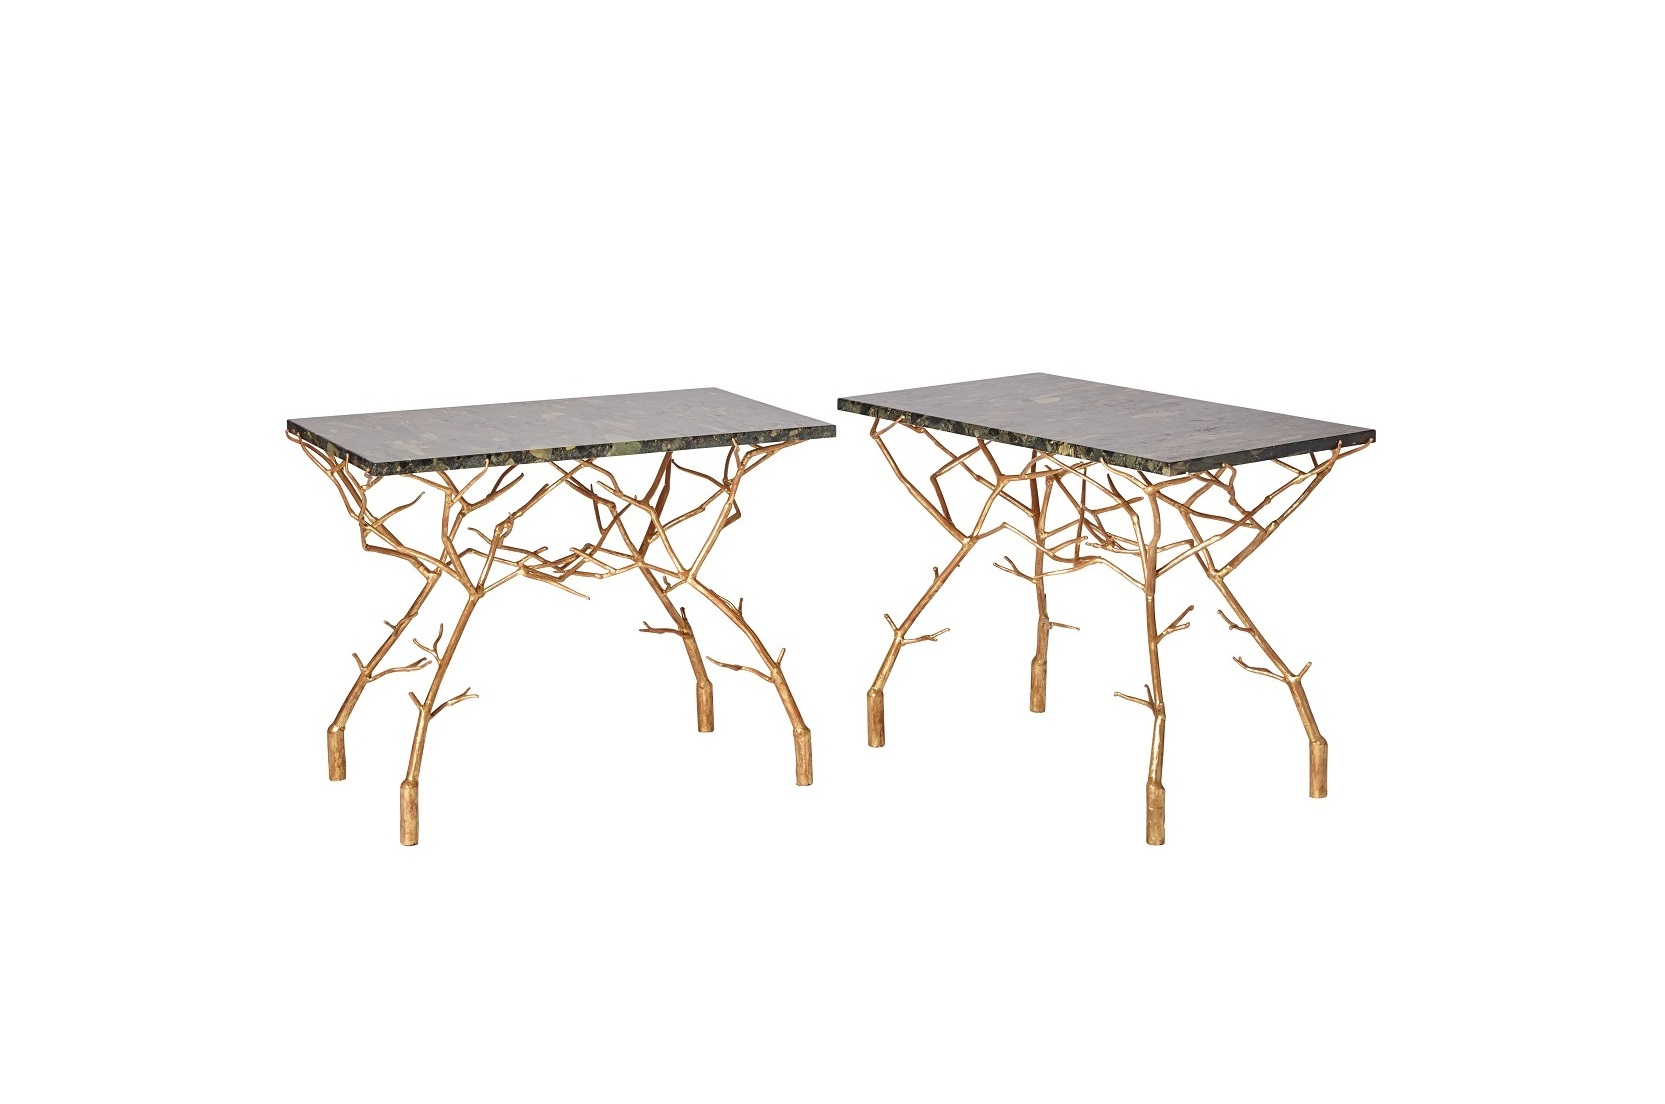 Palm Tree Furniture From Pacific Green 11 Dewasamkonginfo - Palm-tree-furniture-from-pacific-green